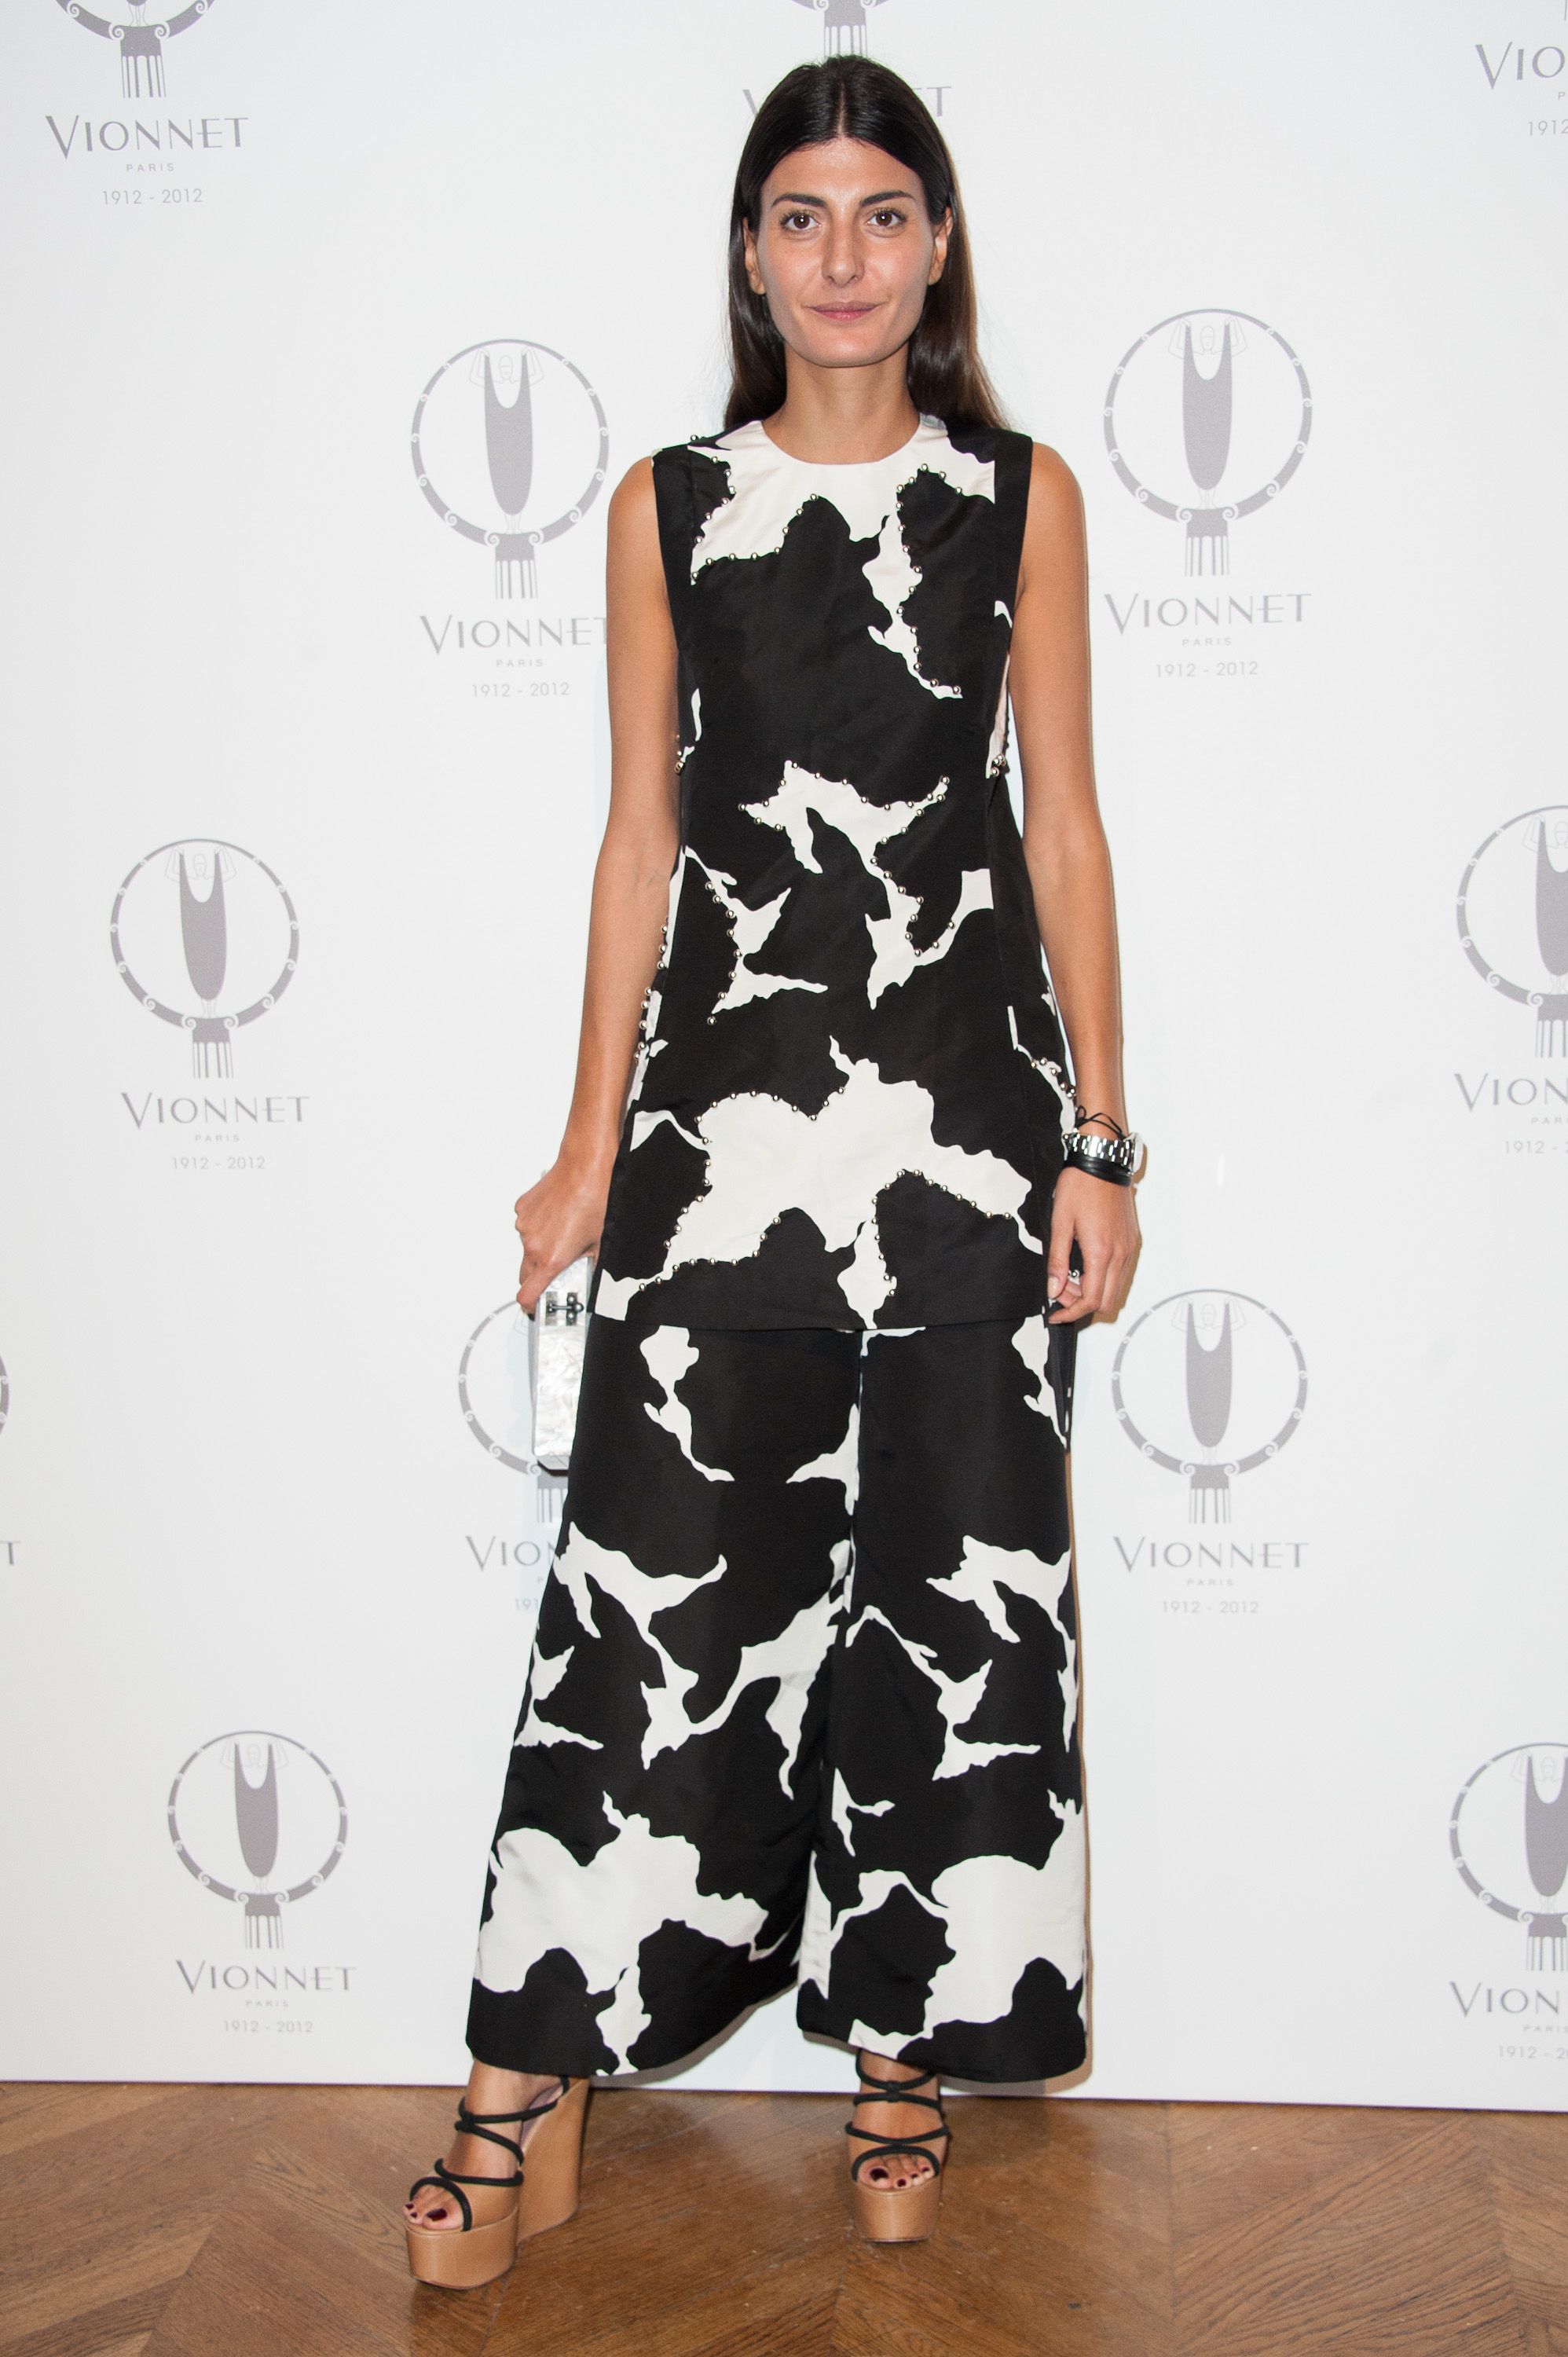 Giovanna Battaglia chose yet another printed look, this time in a modern jumpsuit design, for the Vionnet 100th anniversary.